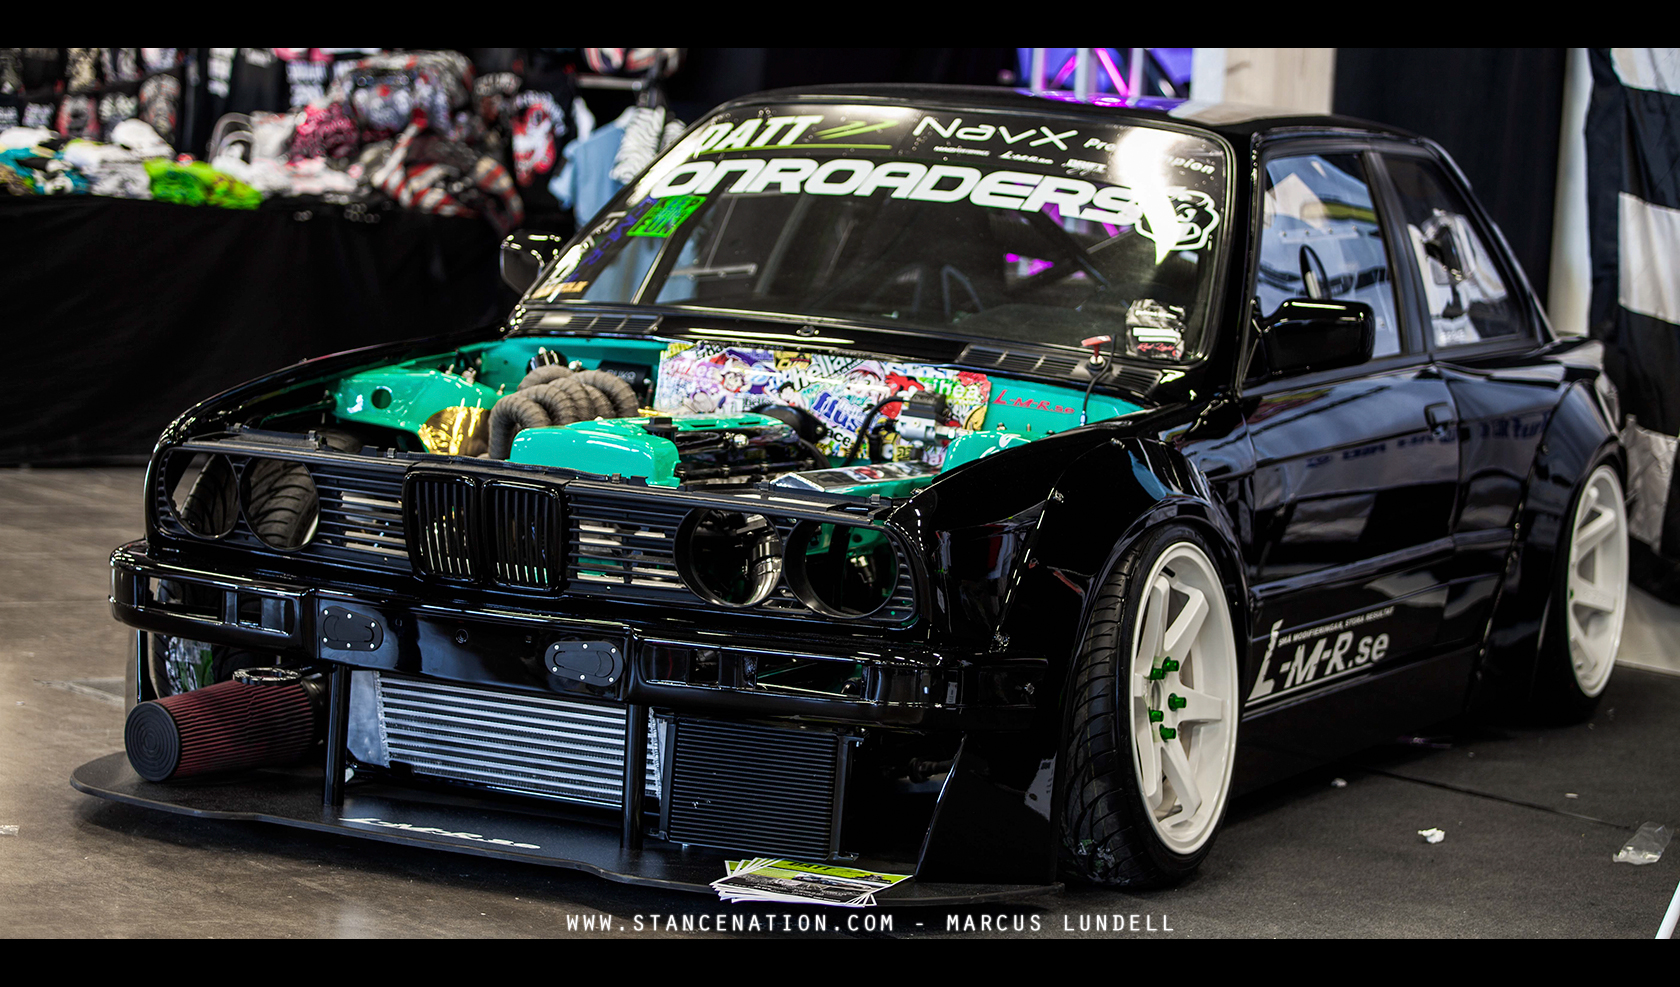 2jz Stuffed In This Bmw E30 Stancenation Form